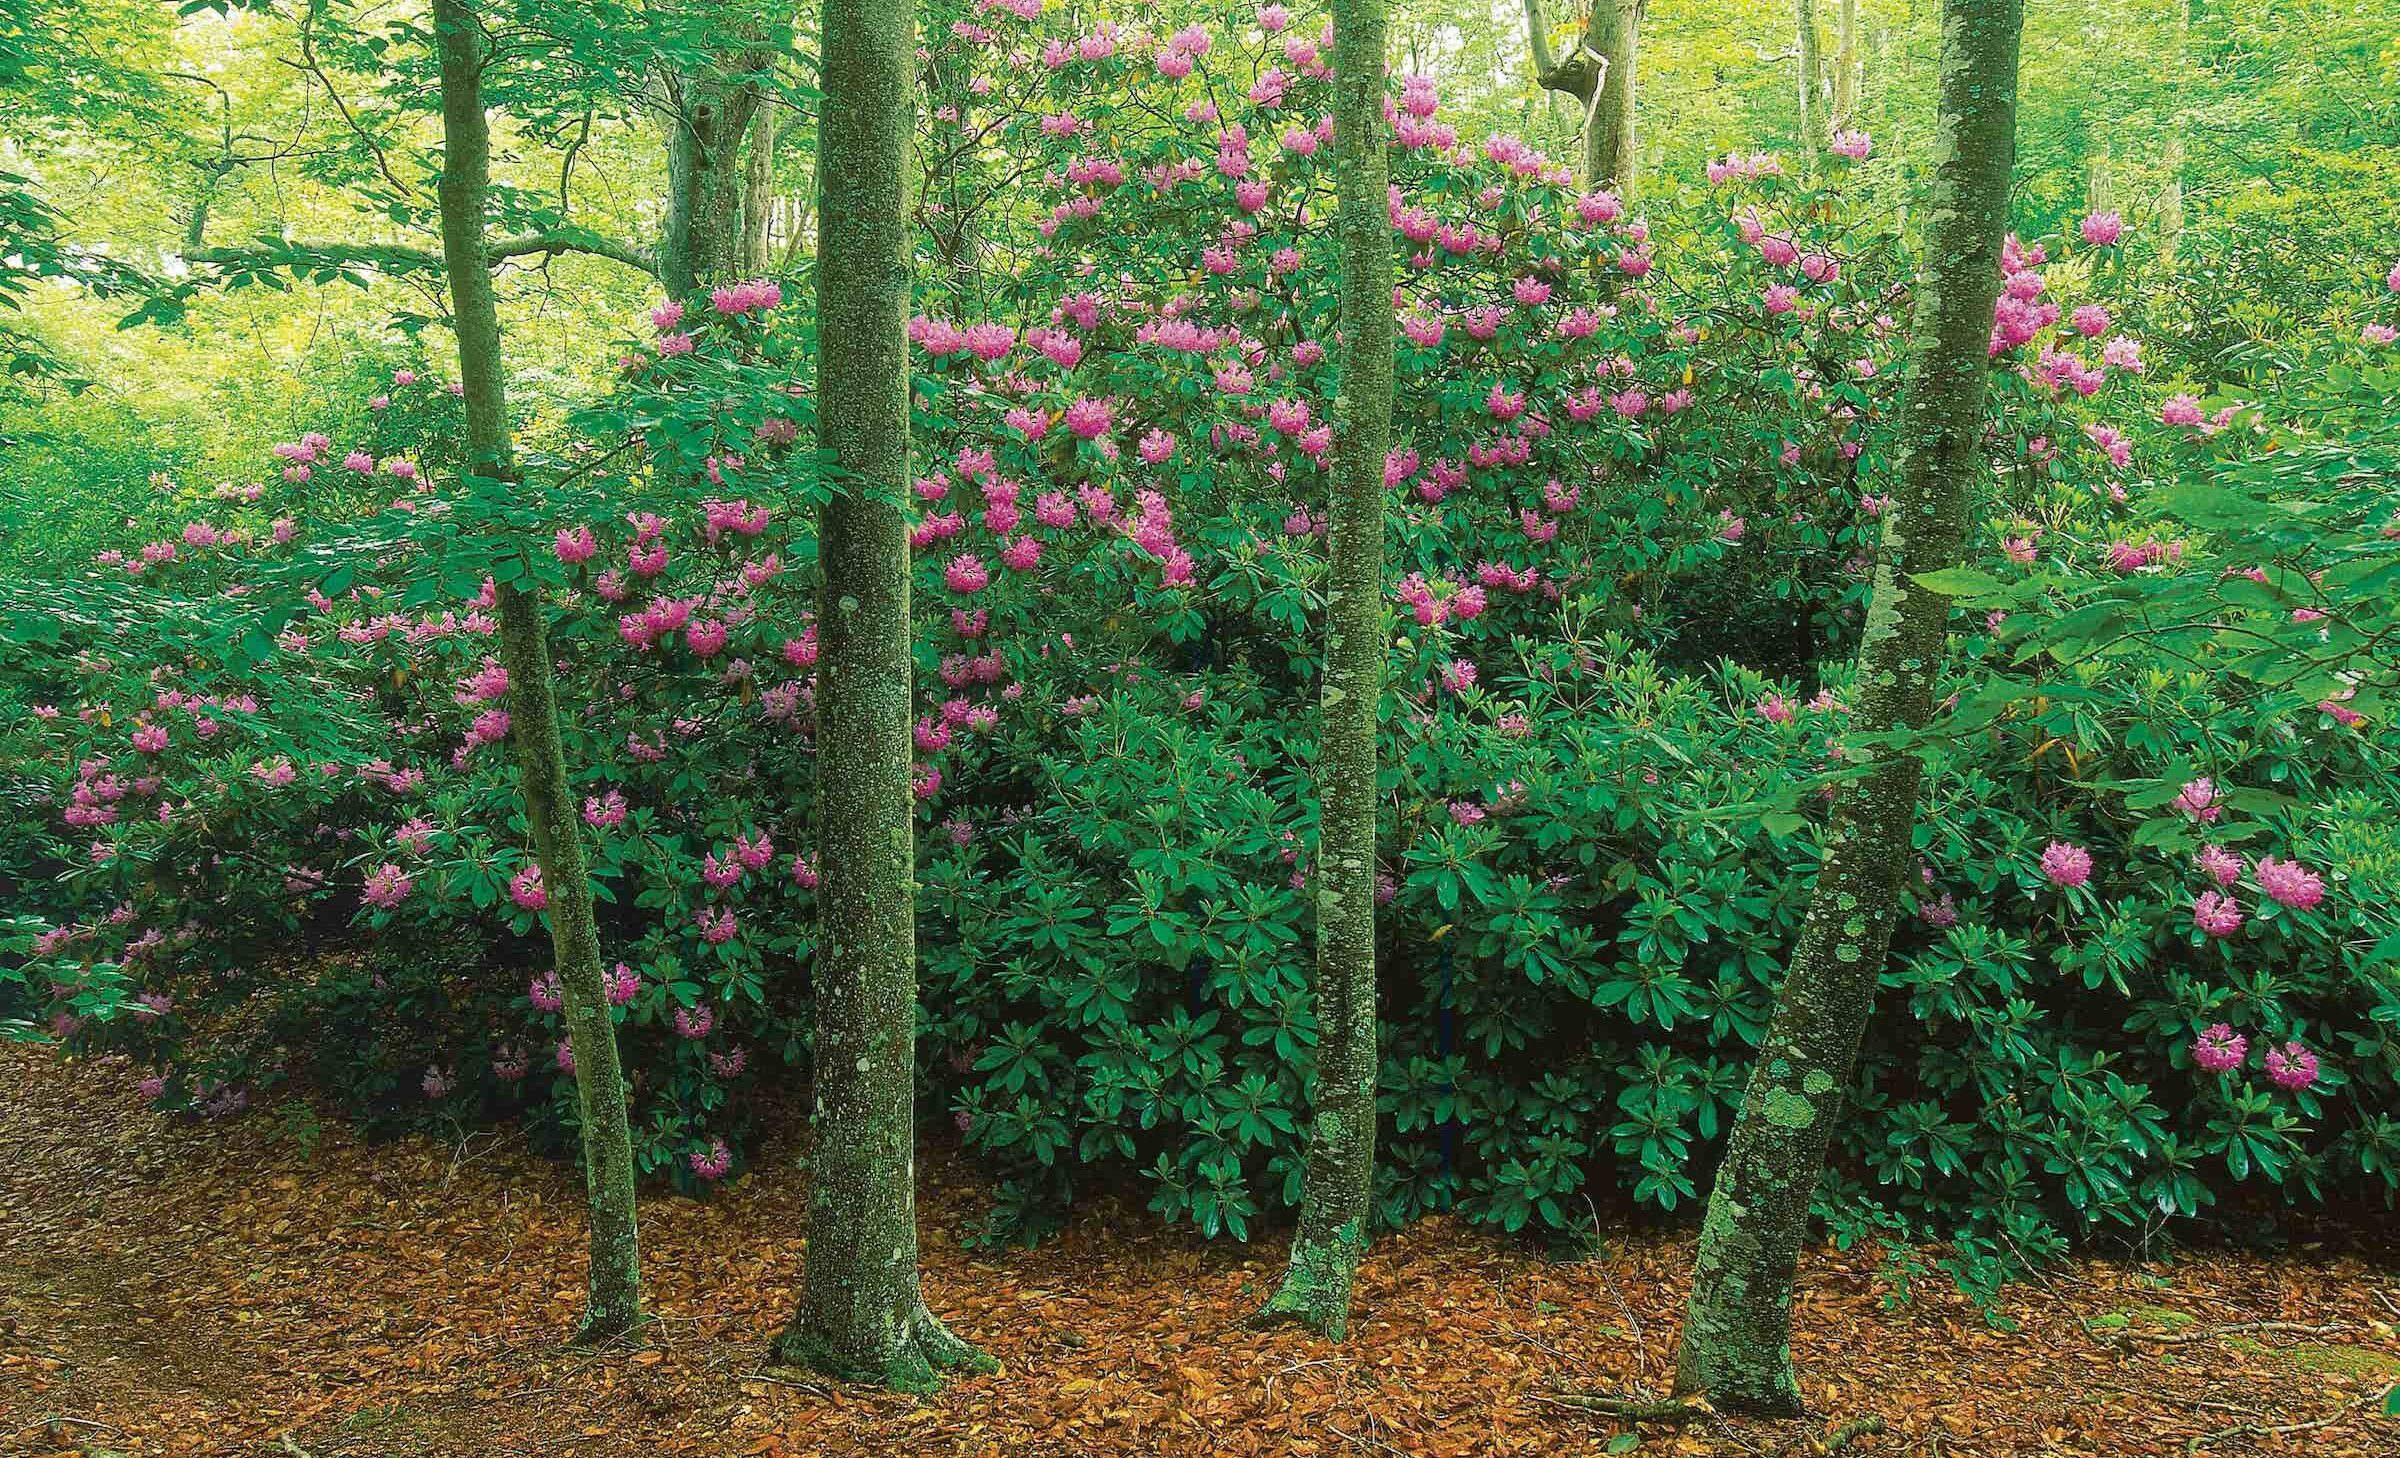 Lowell Holly rhododendrons